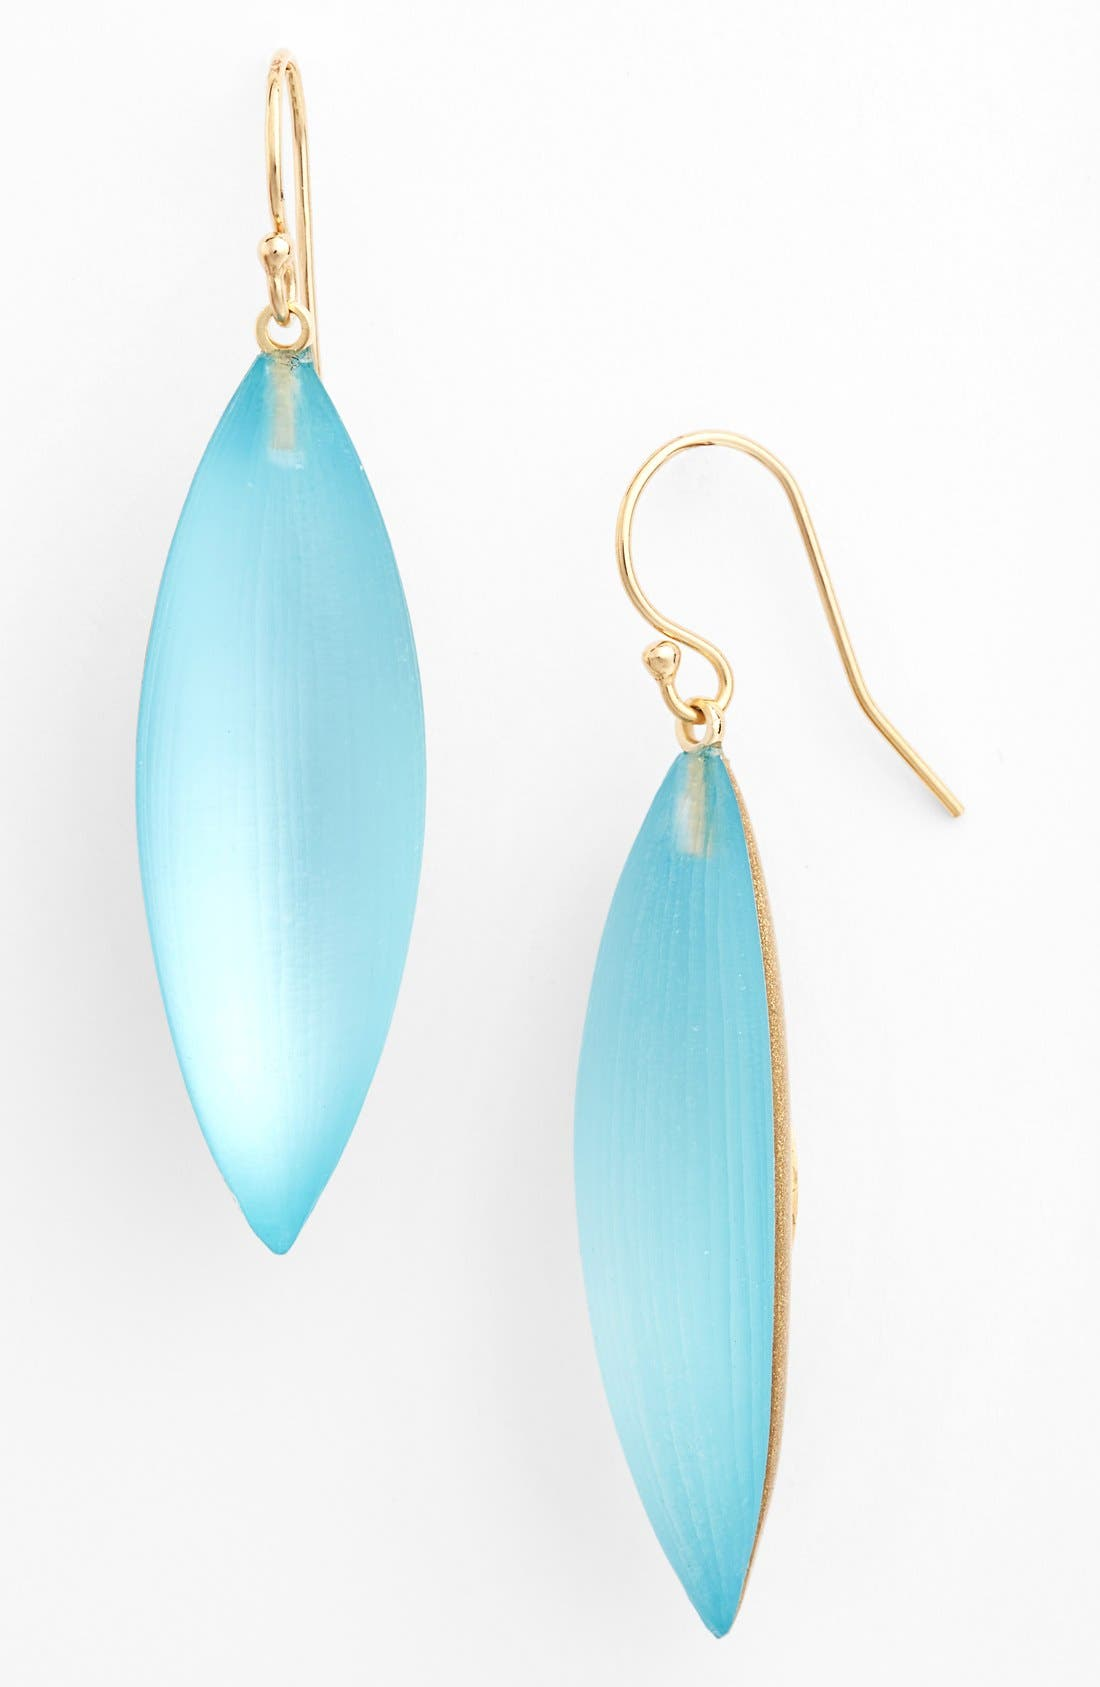 Main Image - Alexis Bittar 'Lucite®' Small Sliver Earrings